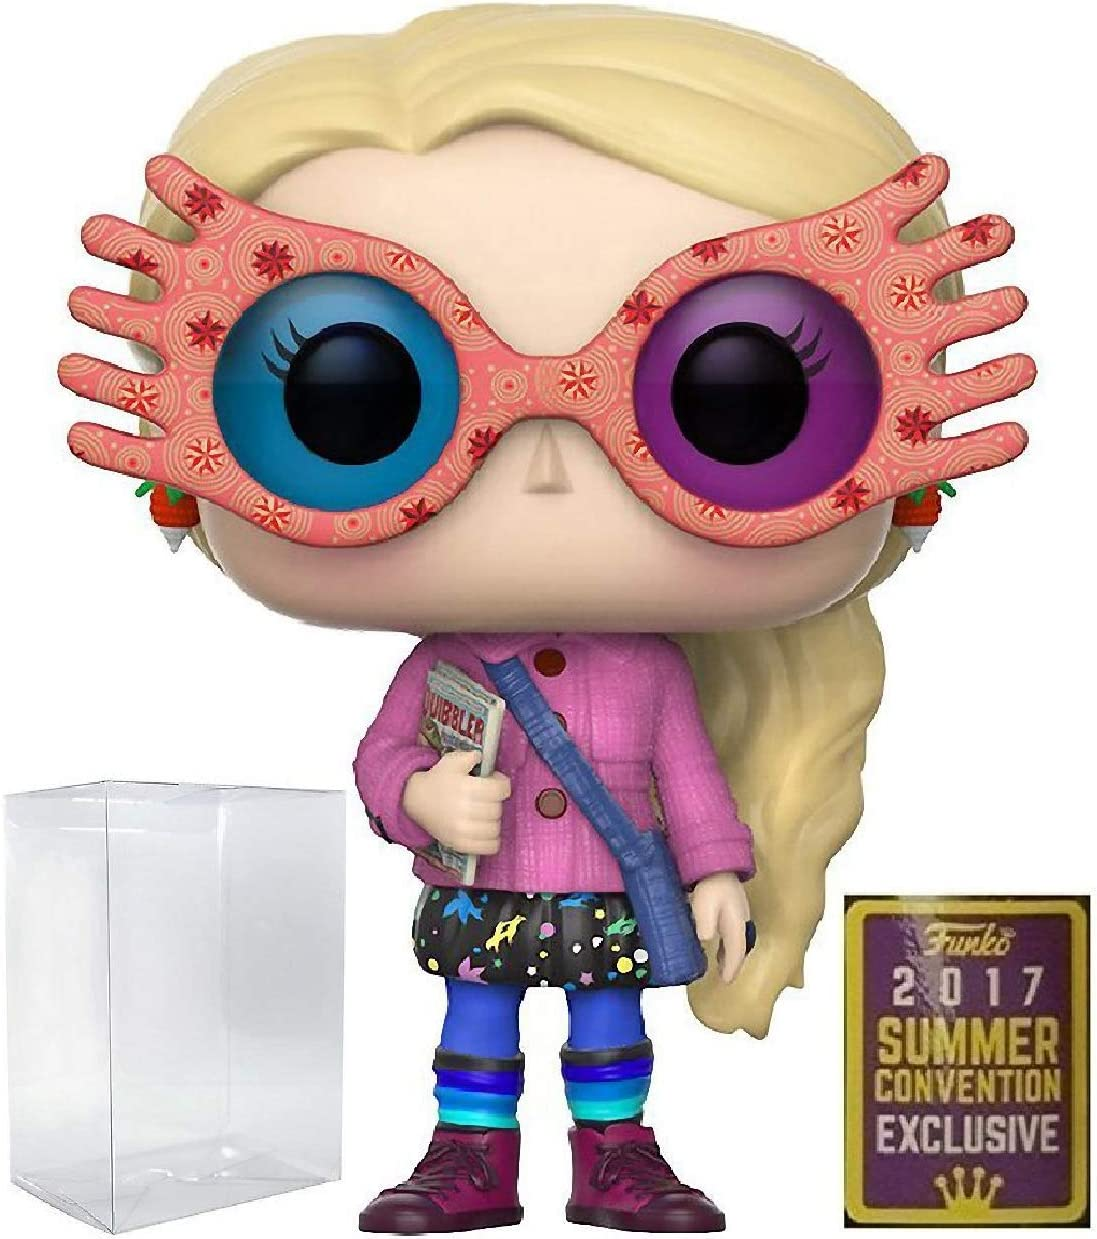 Amazon Com Harry Potter Luna Lovegood With Glasses Funko Pop Sdcc 2017 Summer Convention Exclusive Vinyl Figure Includes Compatible Pop Box Protector Case Toys Games Ryan sickler gets the scoop on this week's honeydew. harry potter luna lovegood with glasses funko pop sdcc 2017 summer convention exclusive vinyl figure includes compatible pop box protector case